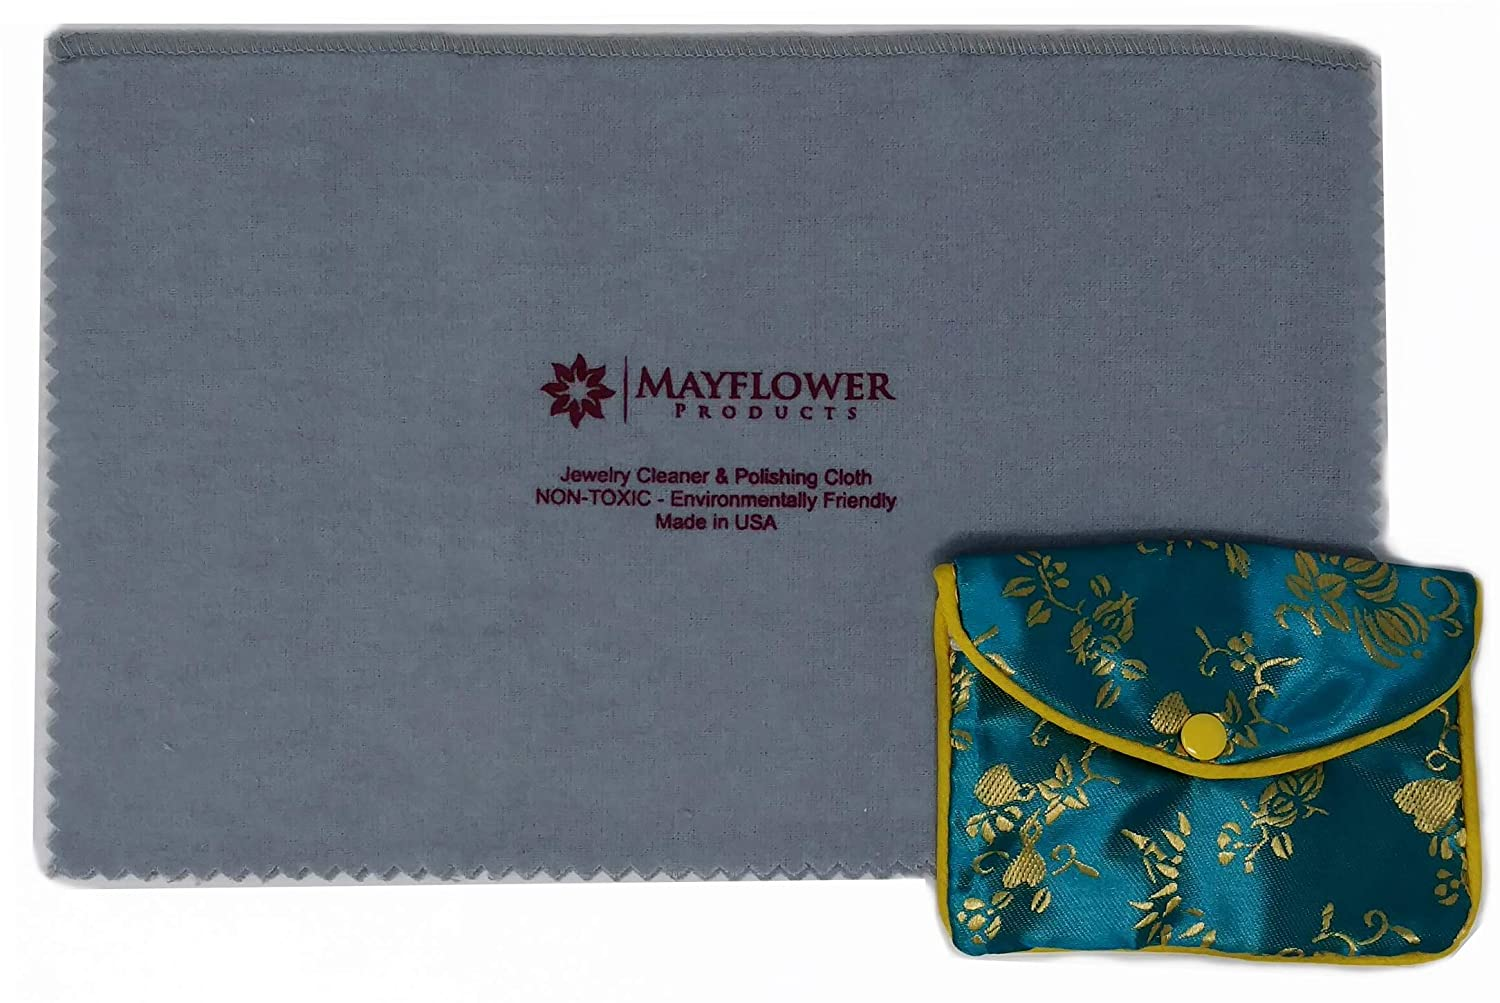 Mayflower Polishing Cloth for Cleaning Silver, Gold and Platinum Jewelry -NON TOXIC- Made In USA- Size 11 X 14-Tarnish Remover-Layer of Protection-Bonus Jewelry Pouch-Keep Jewelry Clean and Shiny Mayflower Products AL079